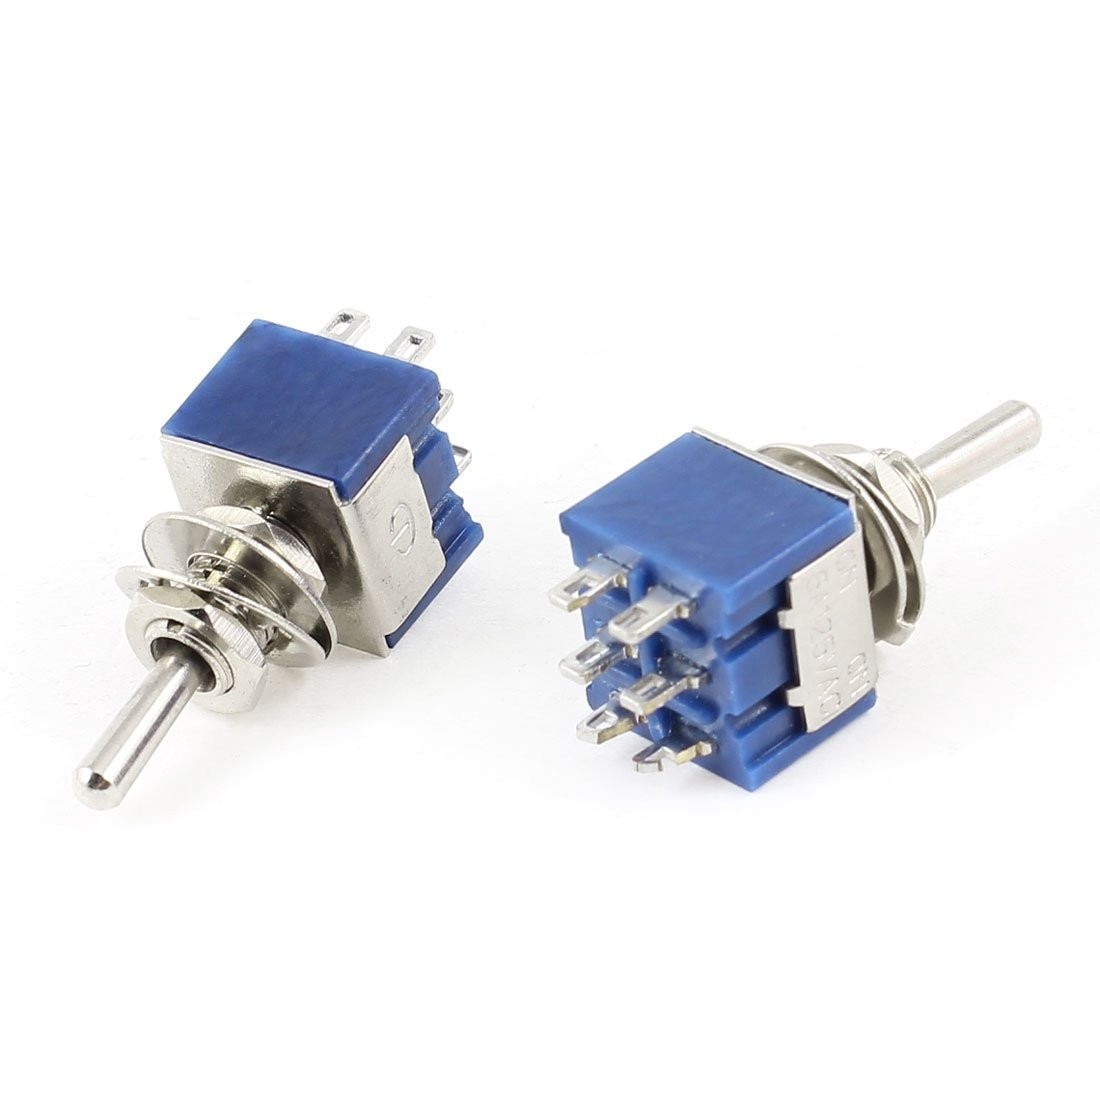 3 49 - Metal Toggle Switch  Dpdt 6 Pin